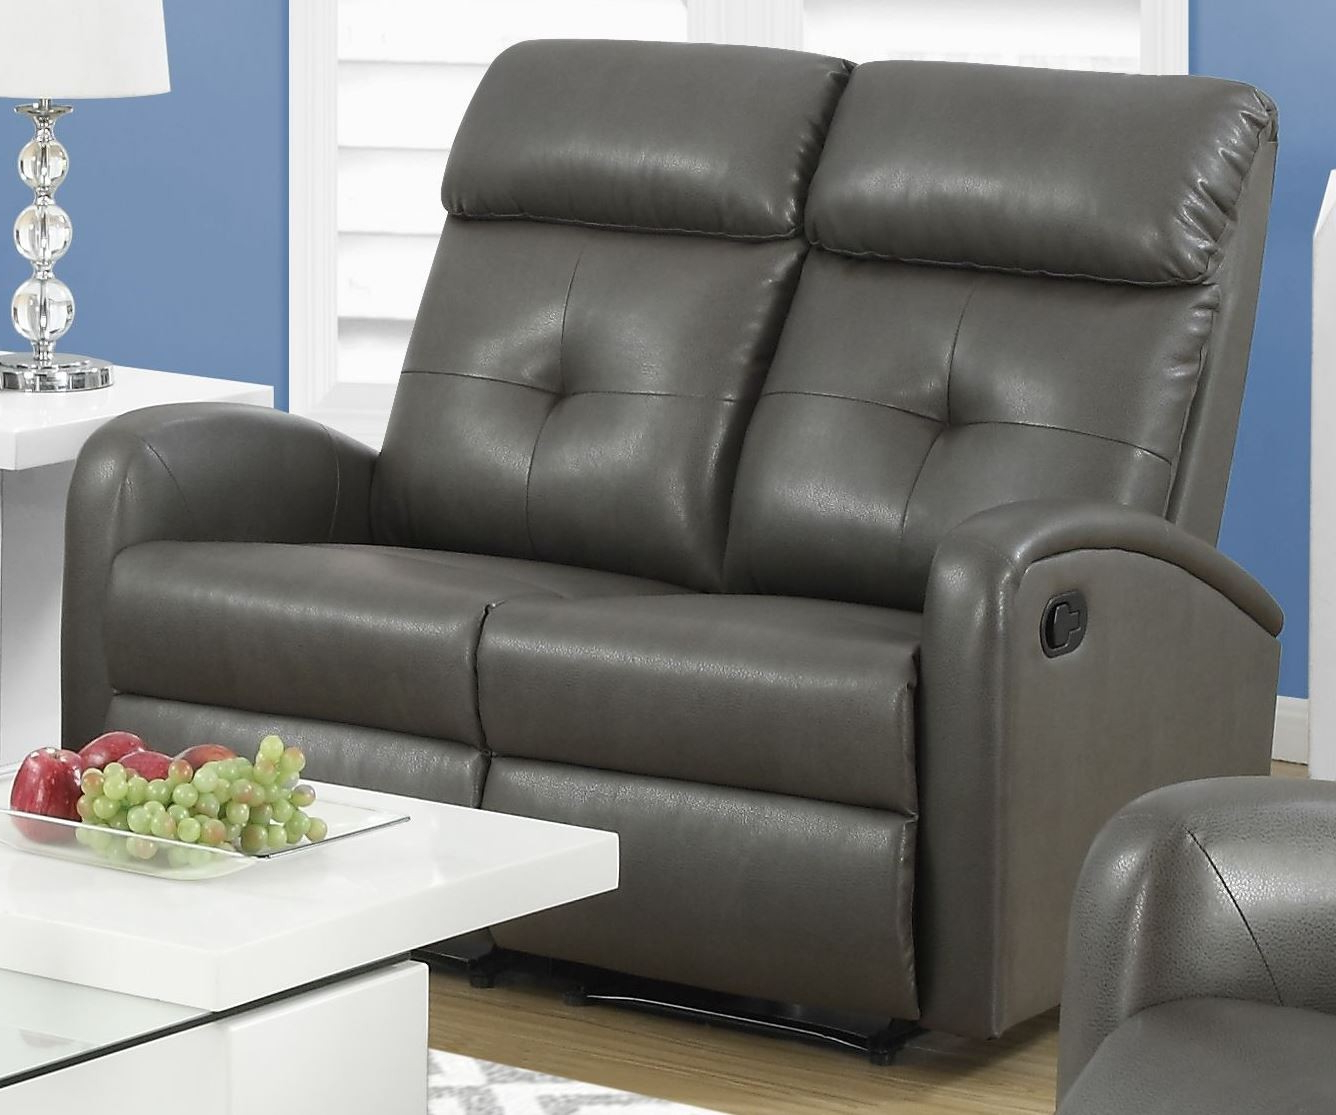 88Gy 2 Charcoal Gray Bonded Leather Reclining Loveseat Regarding Most Recent Gray Reclining Sofas (View 4 of 17)